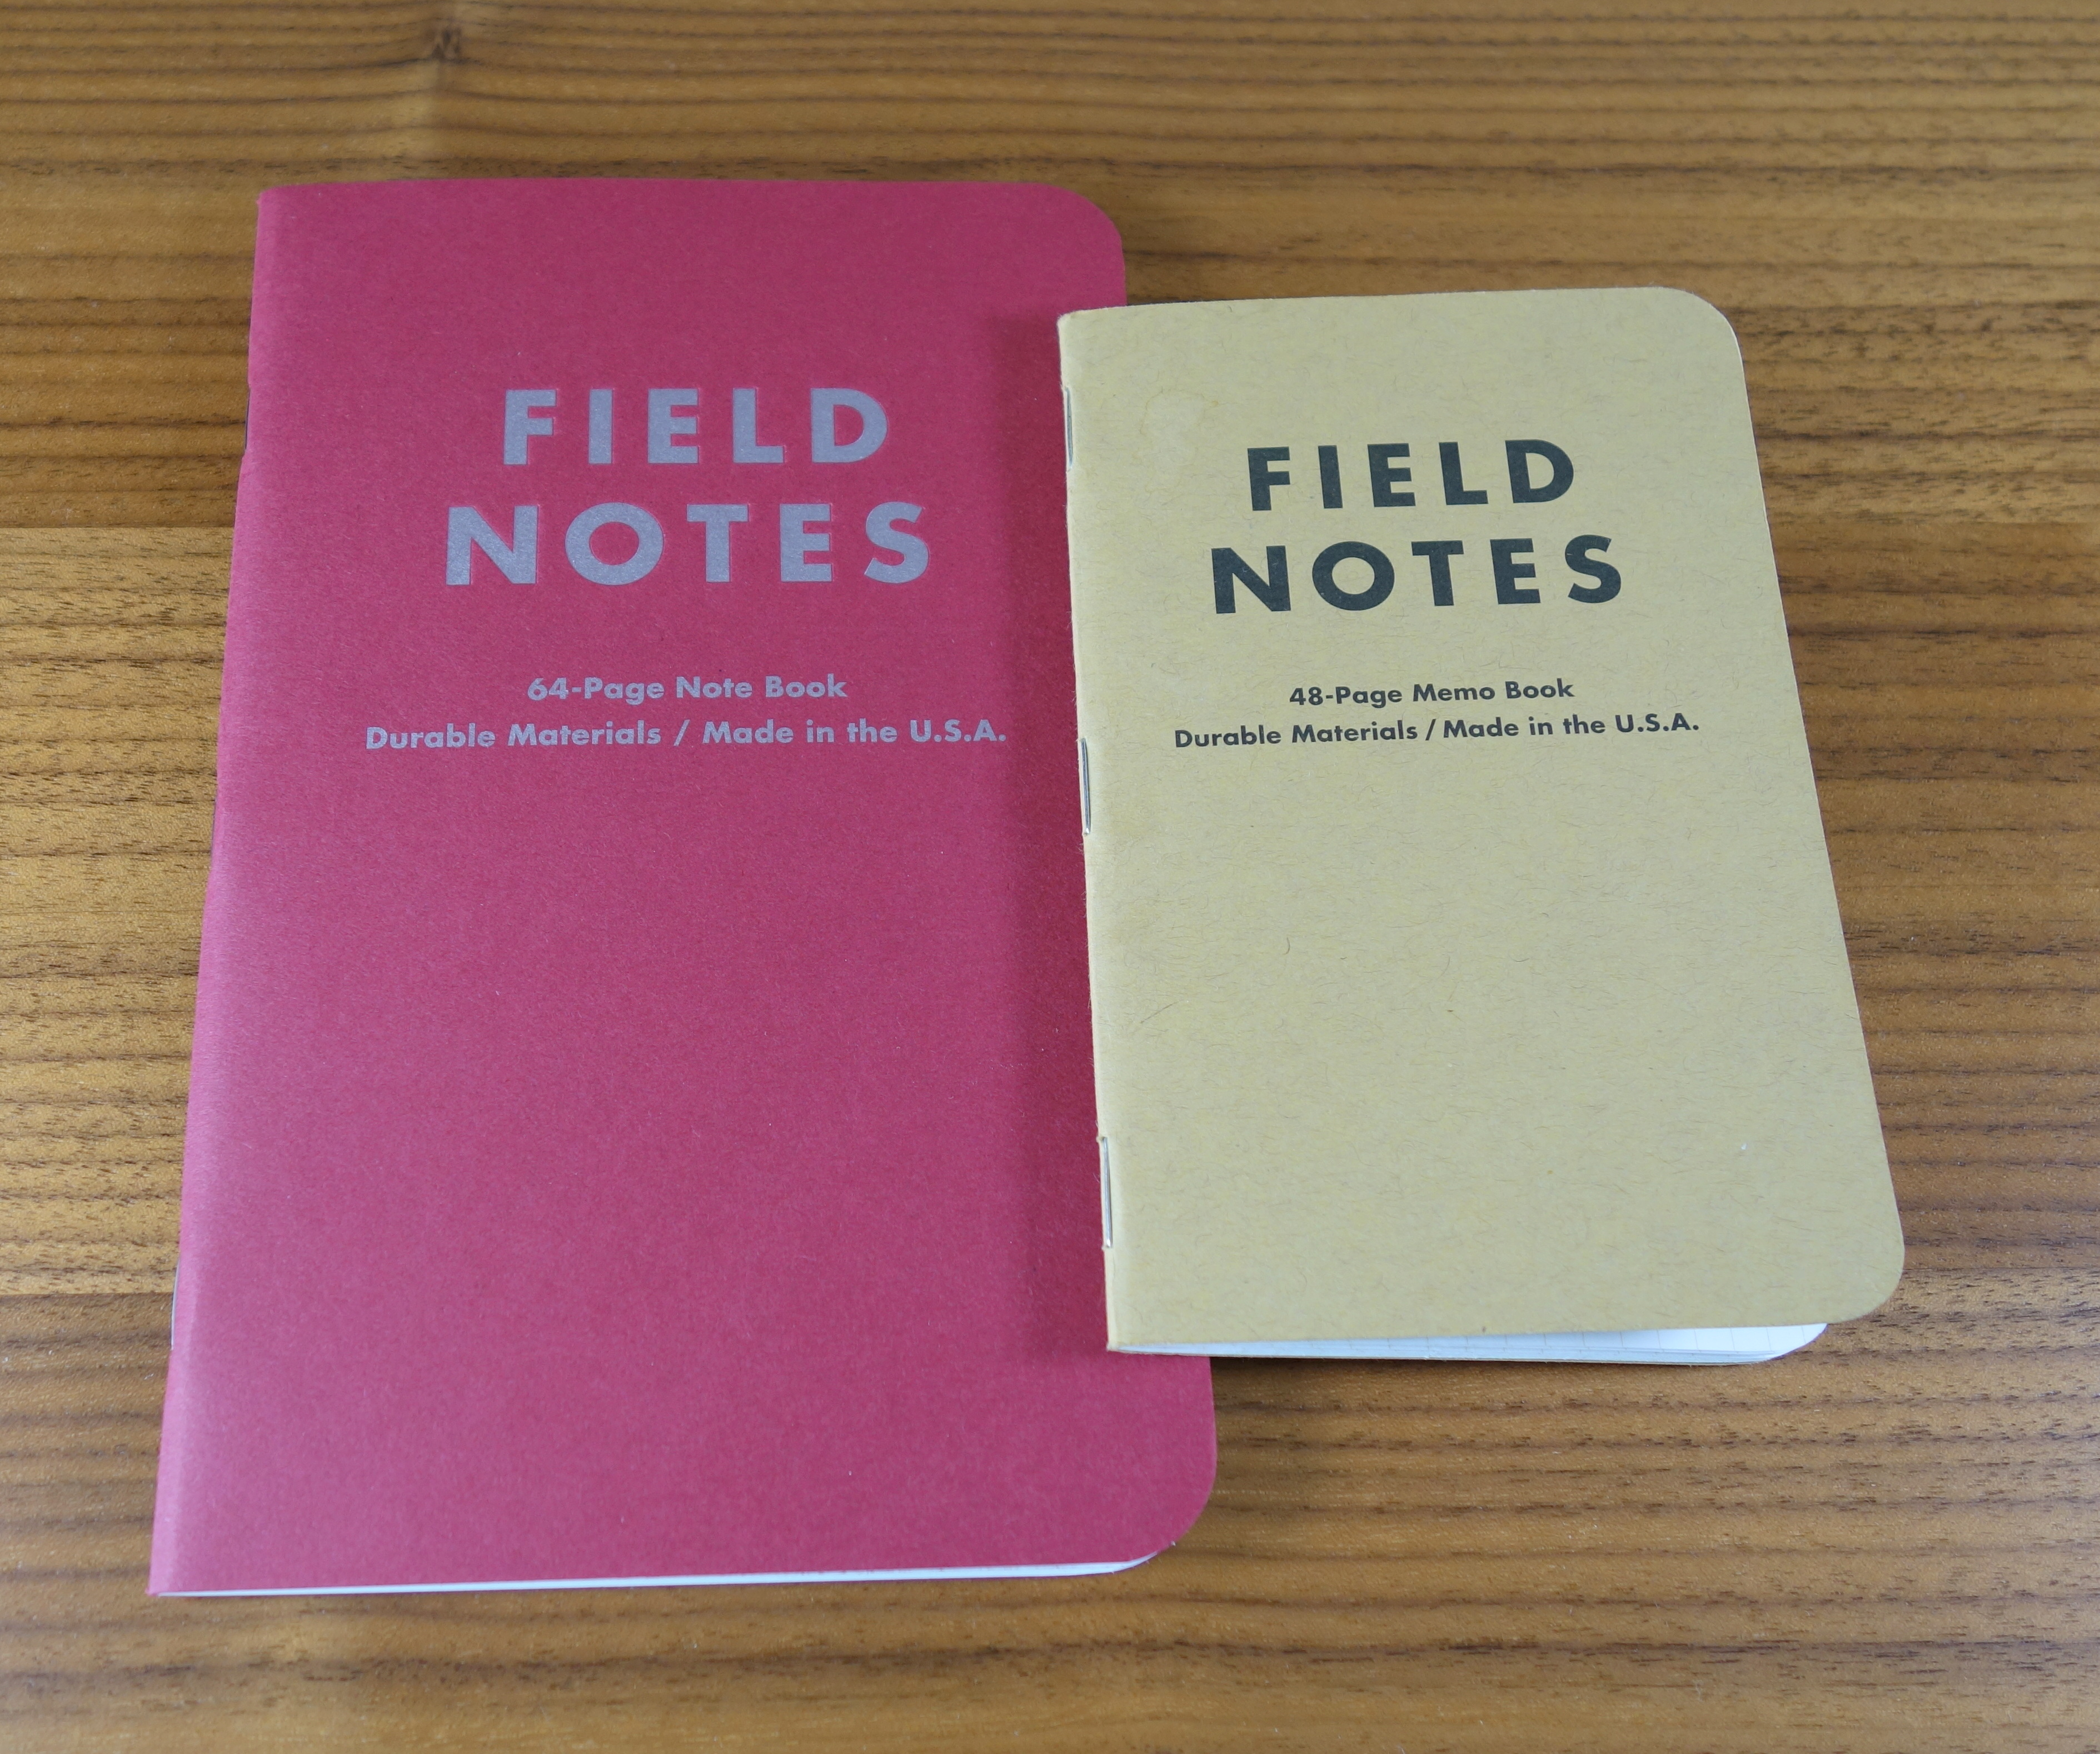 Field Notes Review THE UNROYAL WARRANT – Field Note